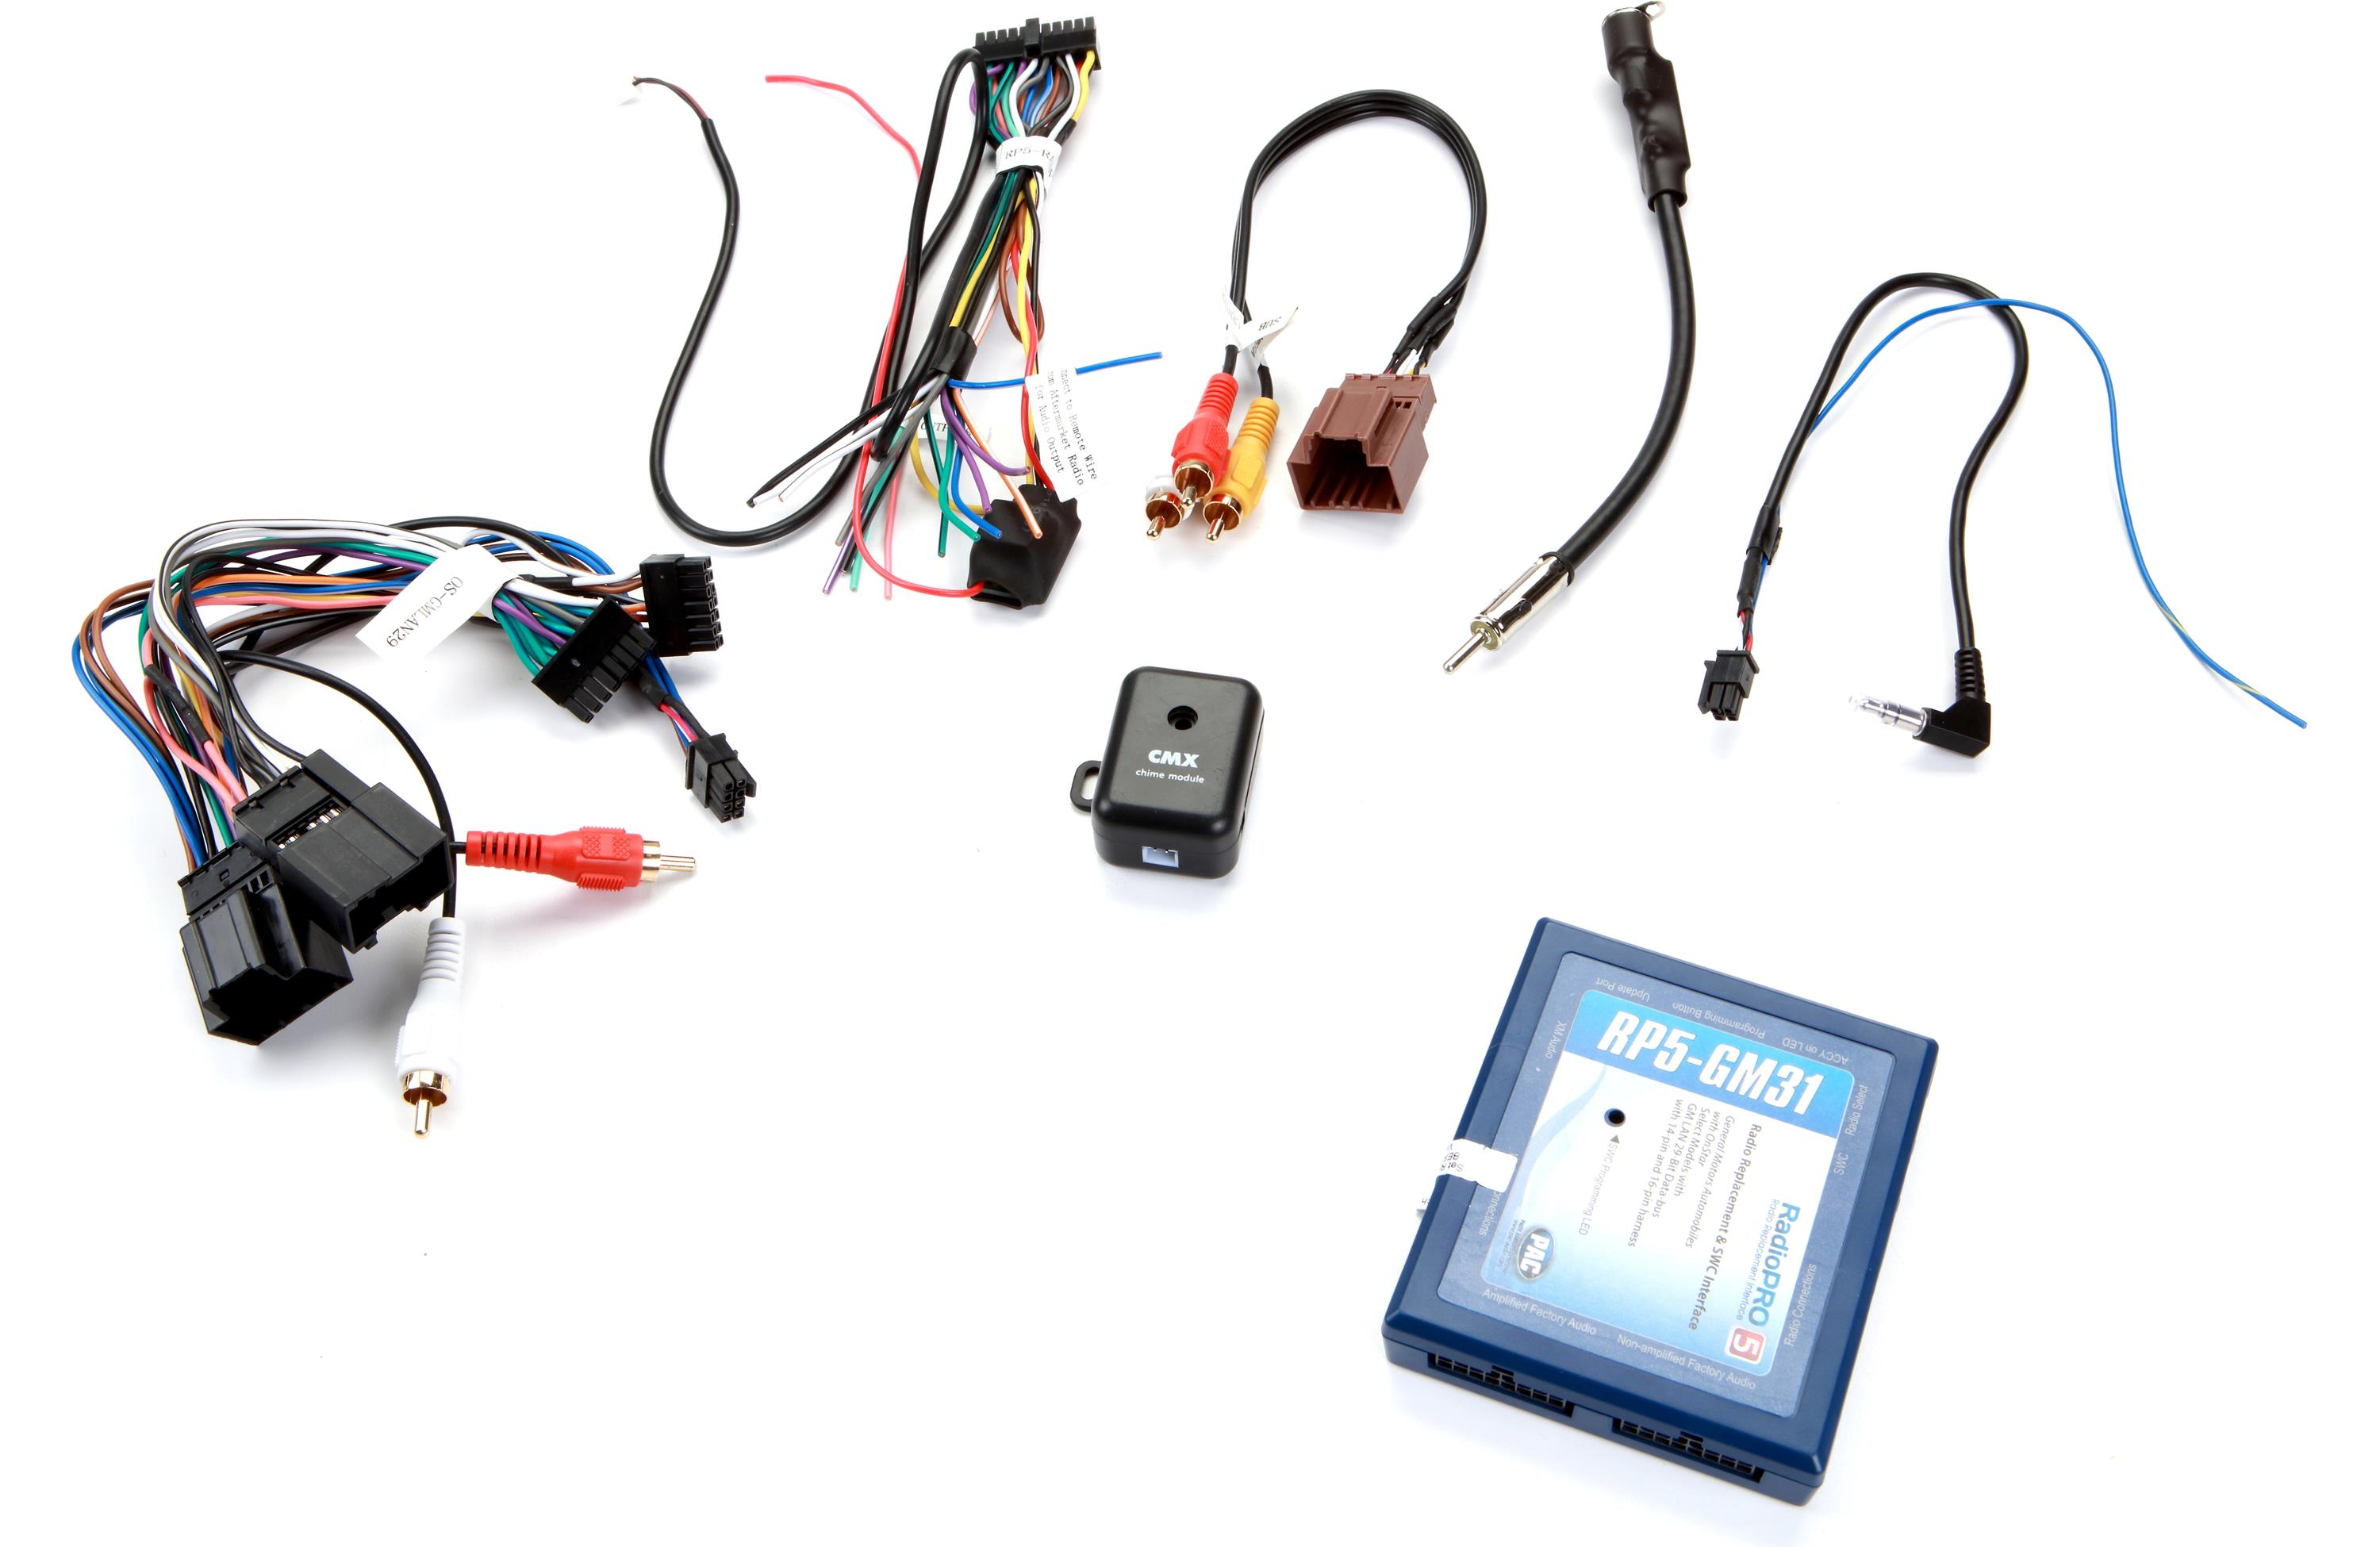 PAC RP5-GM31 - RadioPRO Radio Replacement Interface with